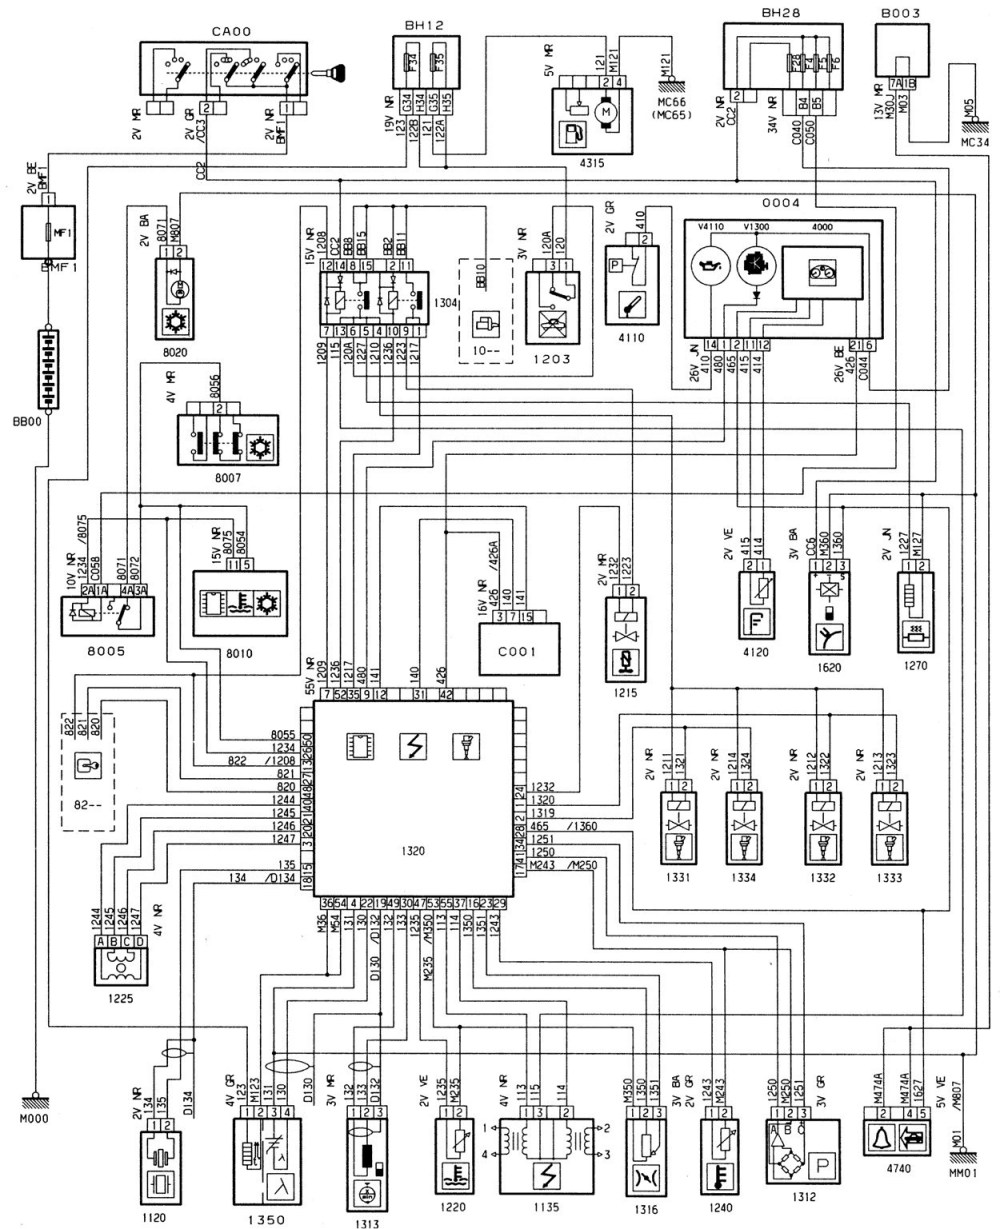 medium resolution of peugeot 206 engine diagram peugeot wiring diagrams mesmerizing afif of peugeot 206 engine diagram 206 gti